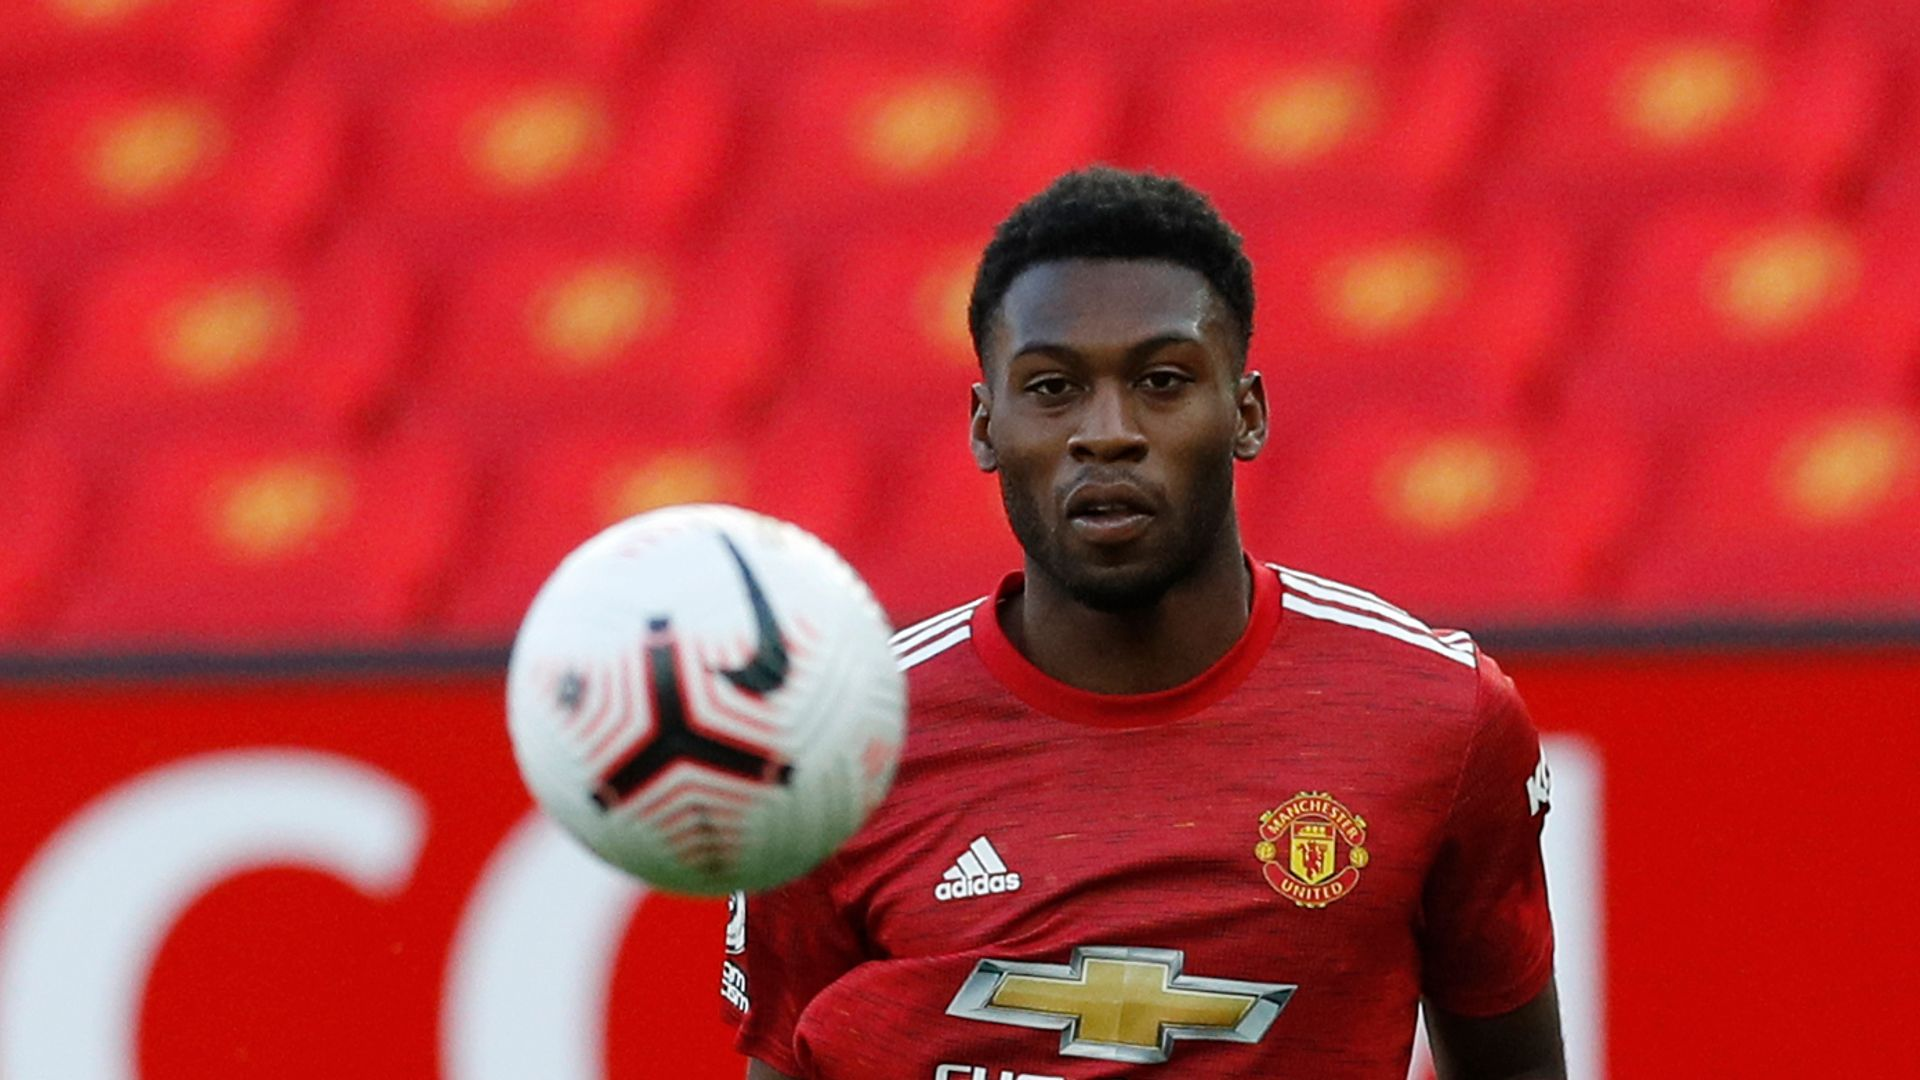 Fosu-Mensah in Germany ahead of £1.8m Leverkusen move